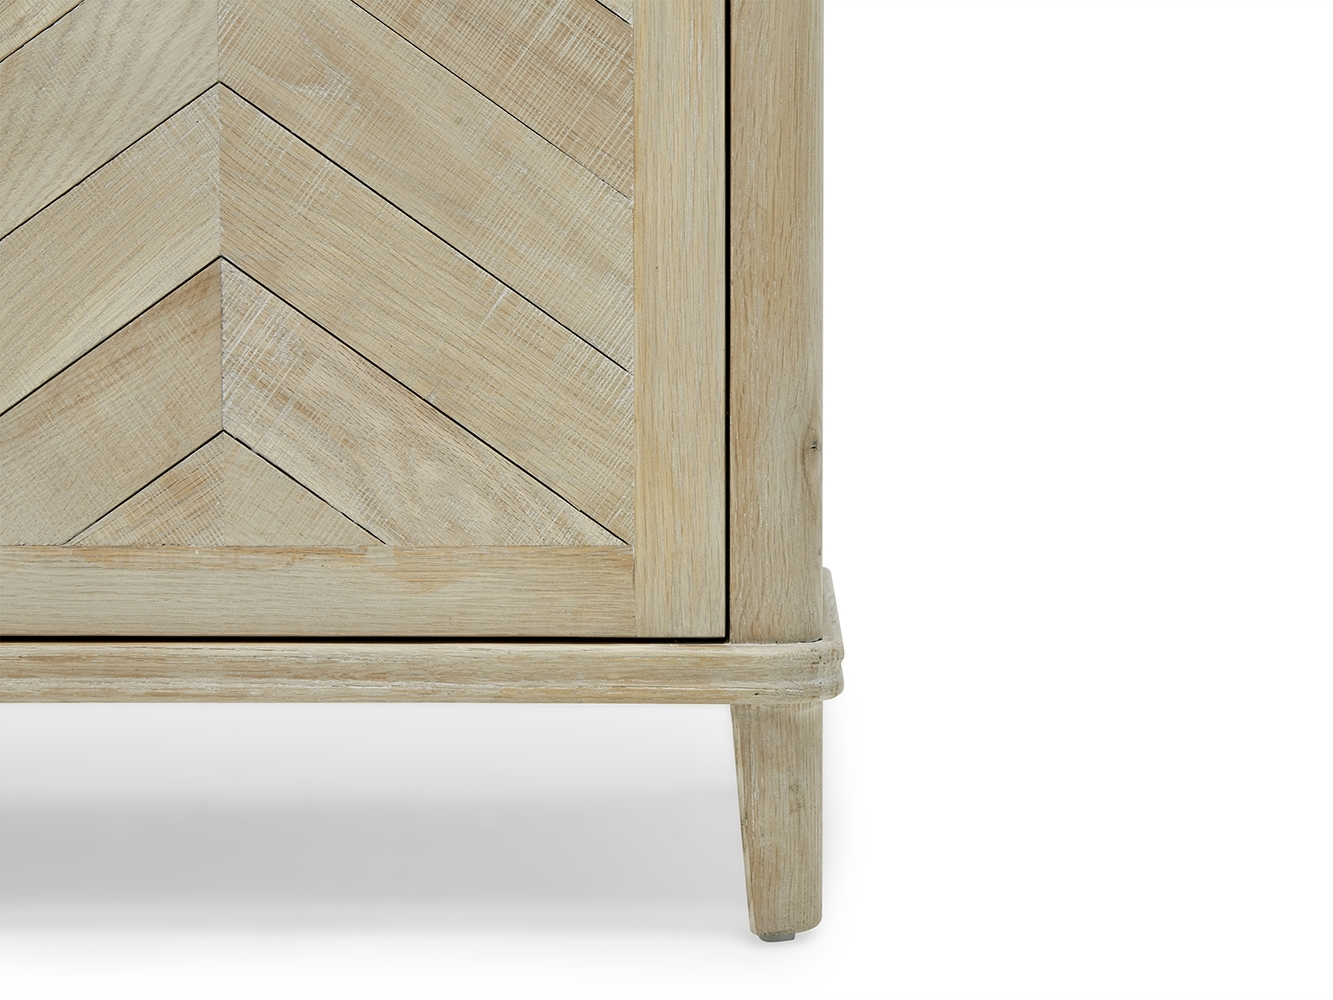 Grand Fandangle Sideboard | Parquet Wood Sideboard | Loaf Throughout Best And Newest Parquet Sideboards (#5 of 20)